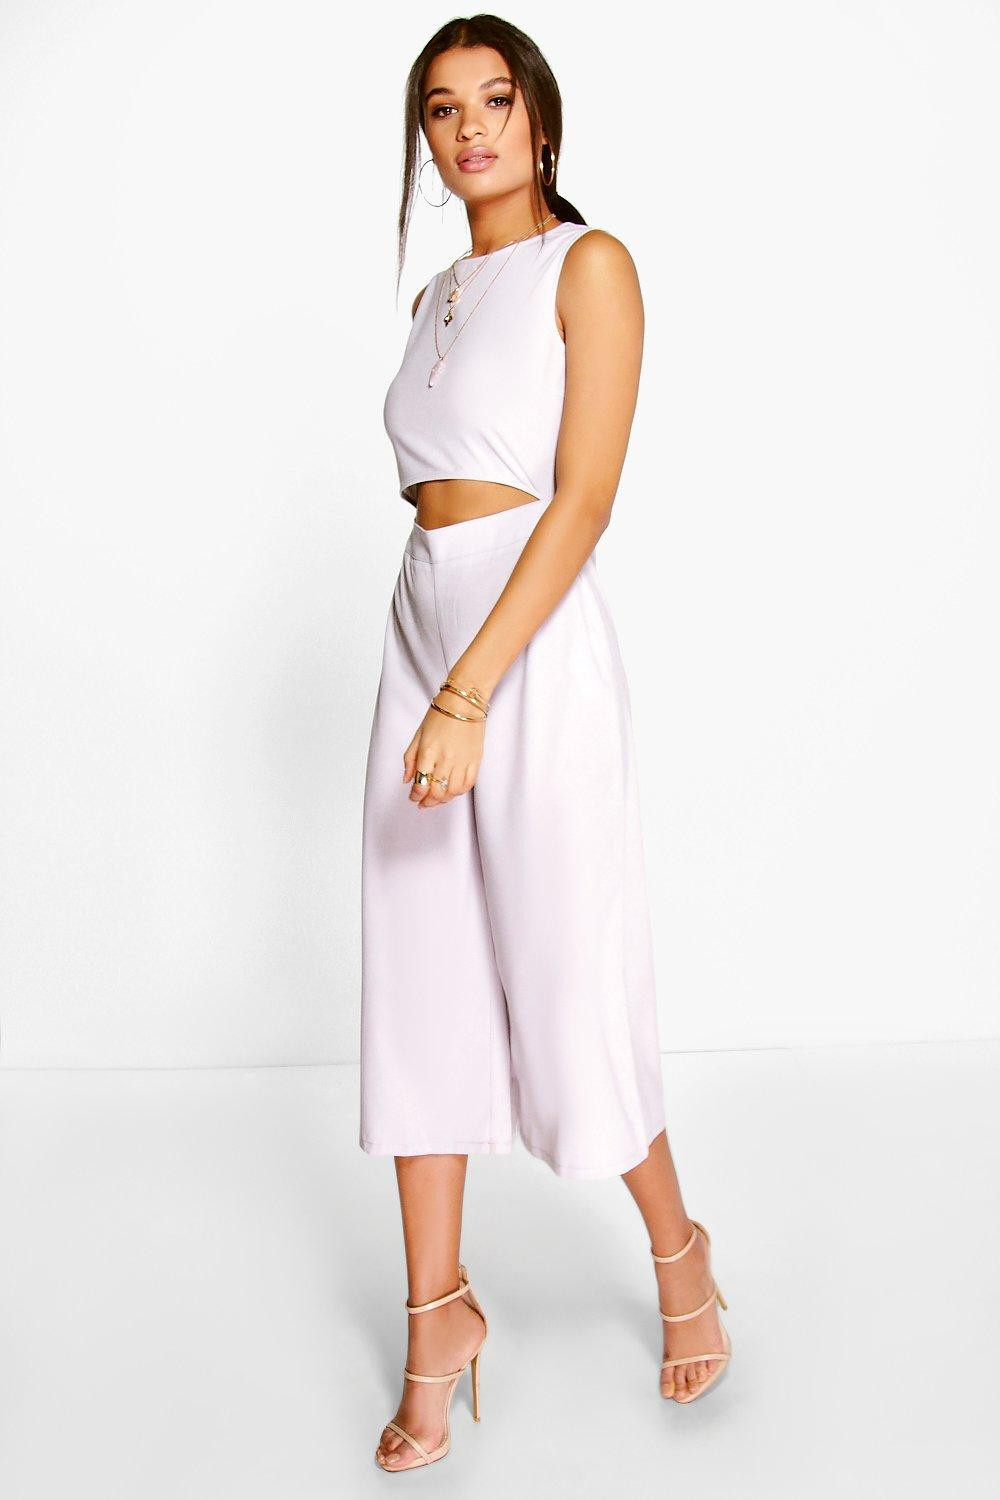 Ost Release Dates For Nice Sale Online Boohoo Culotte Jumpsuit Cheap Websites Clearance Real 6sEdFG7jp